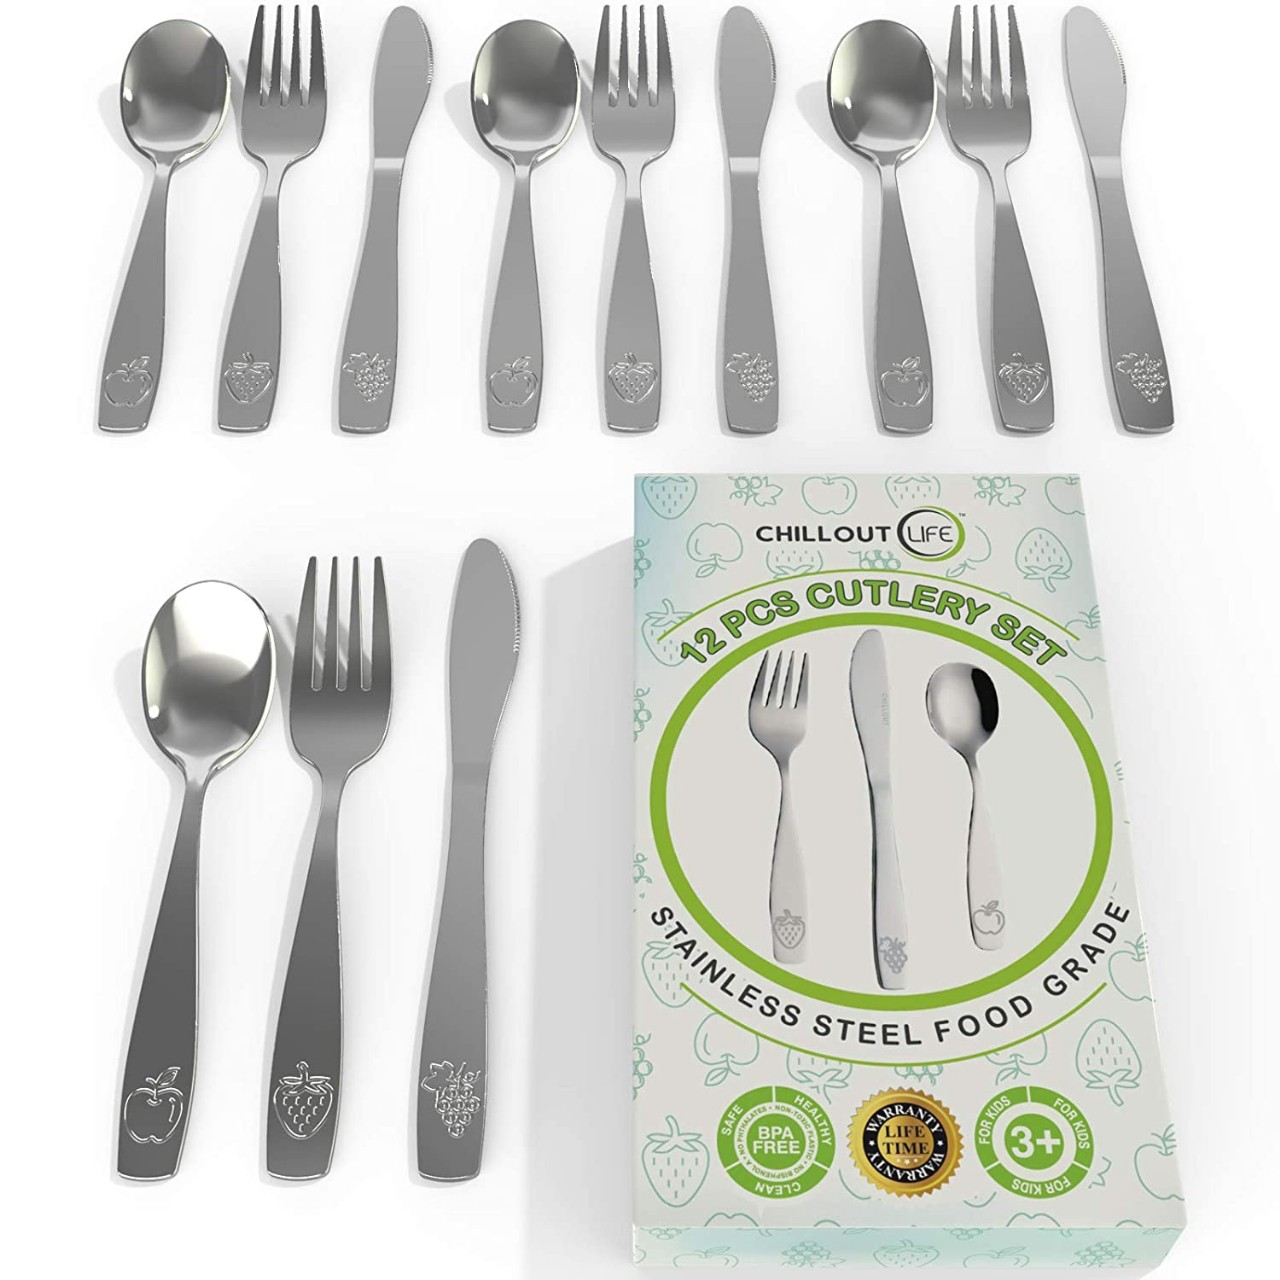 CHILLOUT LIFE 12 Piece Stainless Steel Kids Silverware Set - Child and Toddler Safe Flatware - Kids